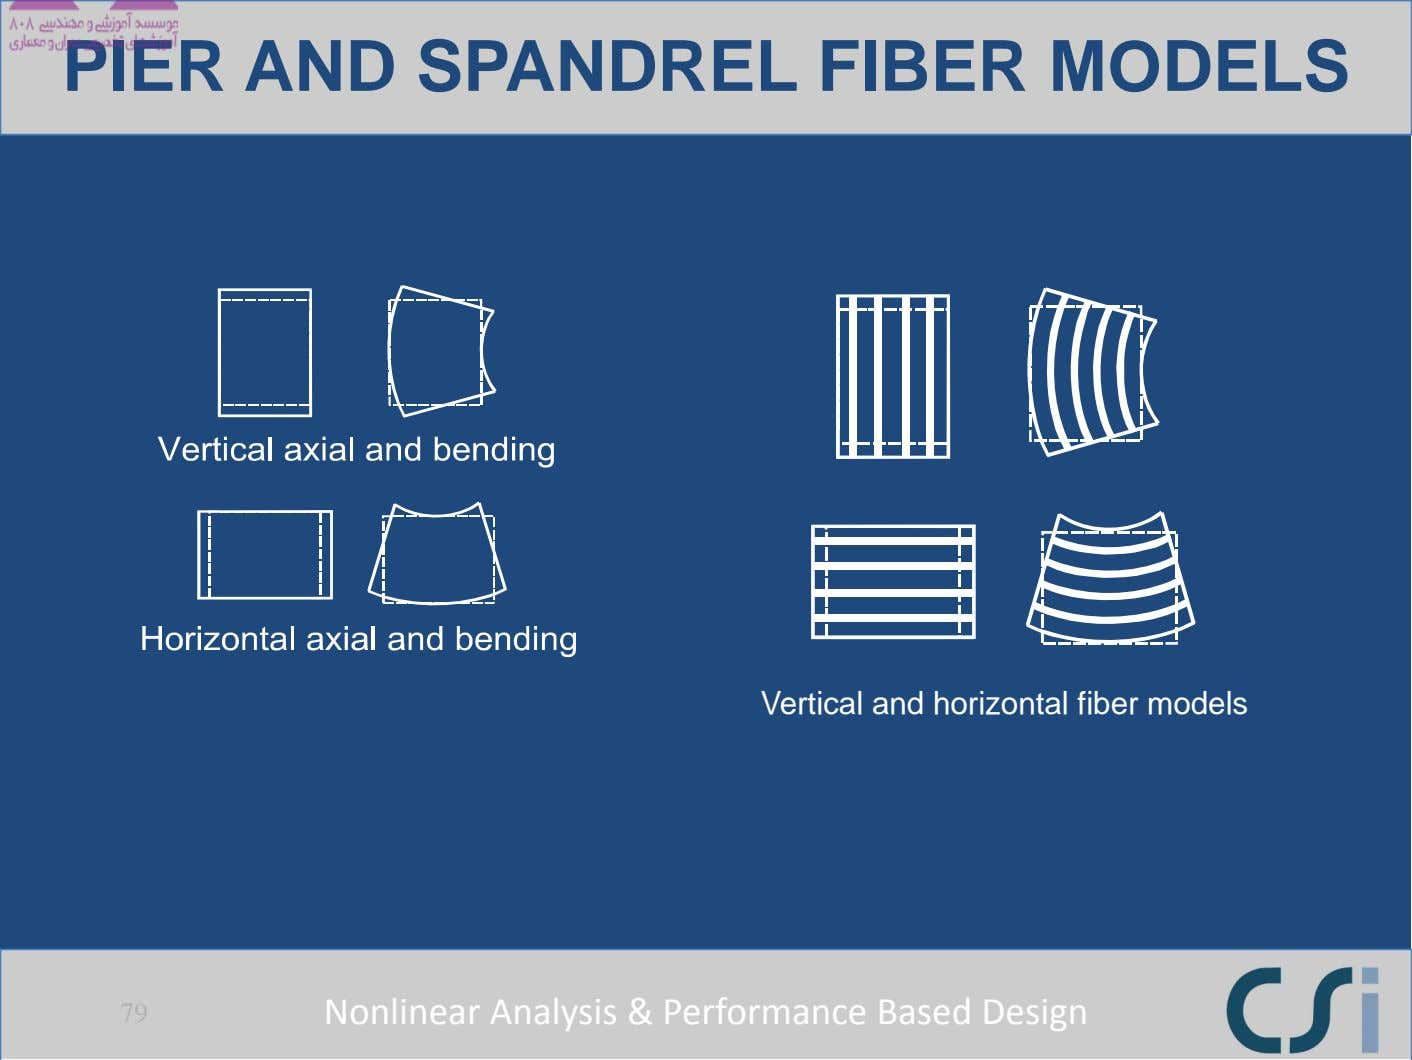 PIER AND SPANDREL FIBER MODELS Vertical and horizontal fiber models 79 Nonlinear Analysis & Performance